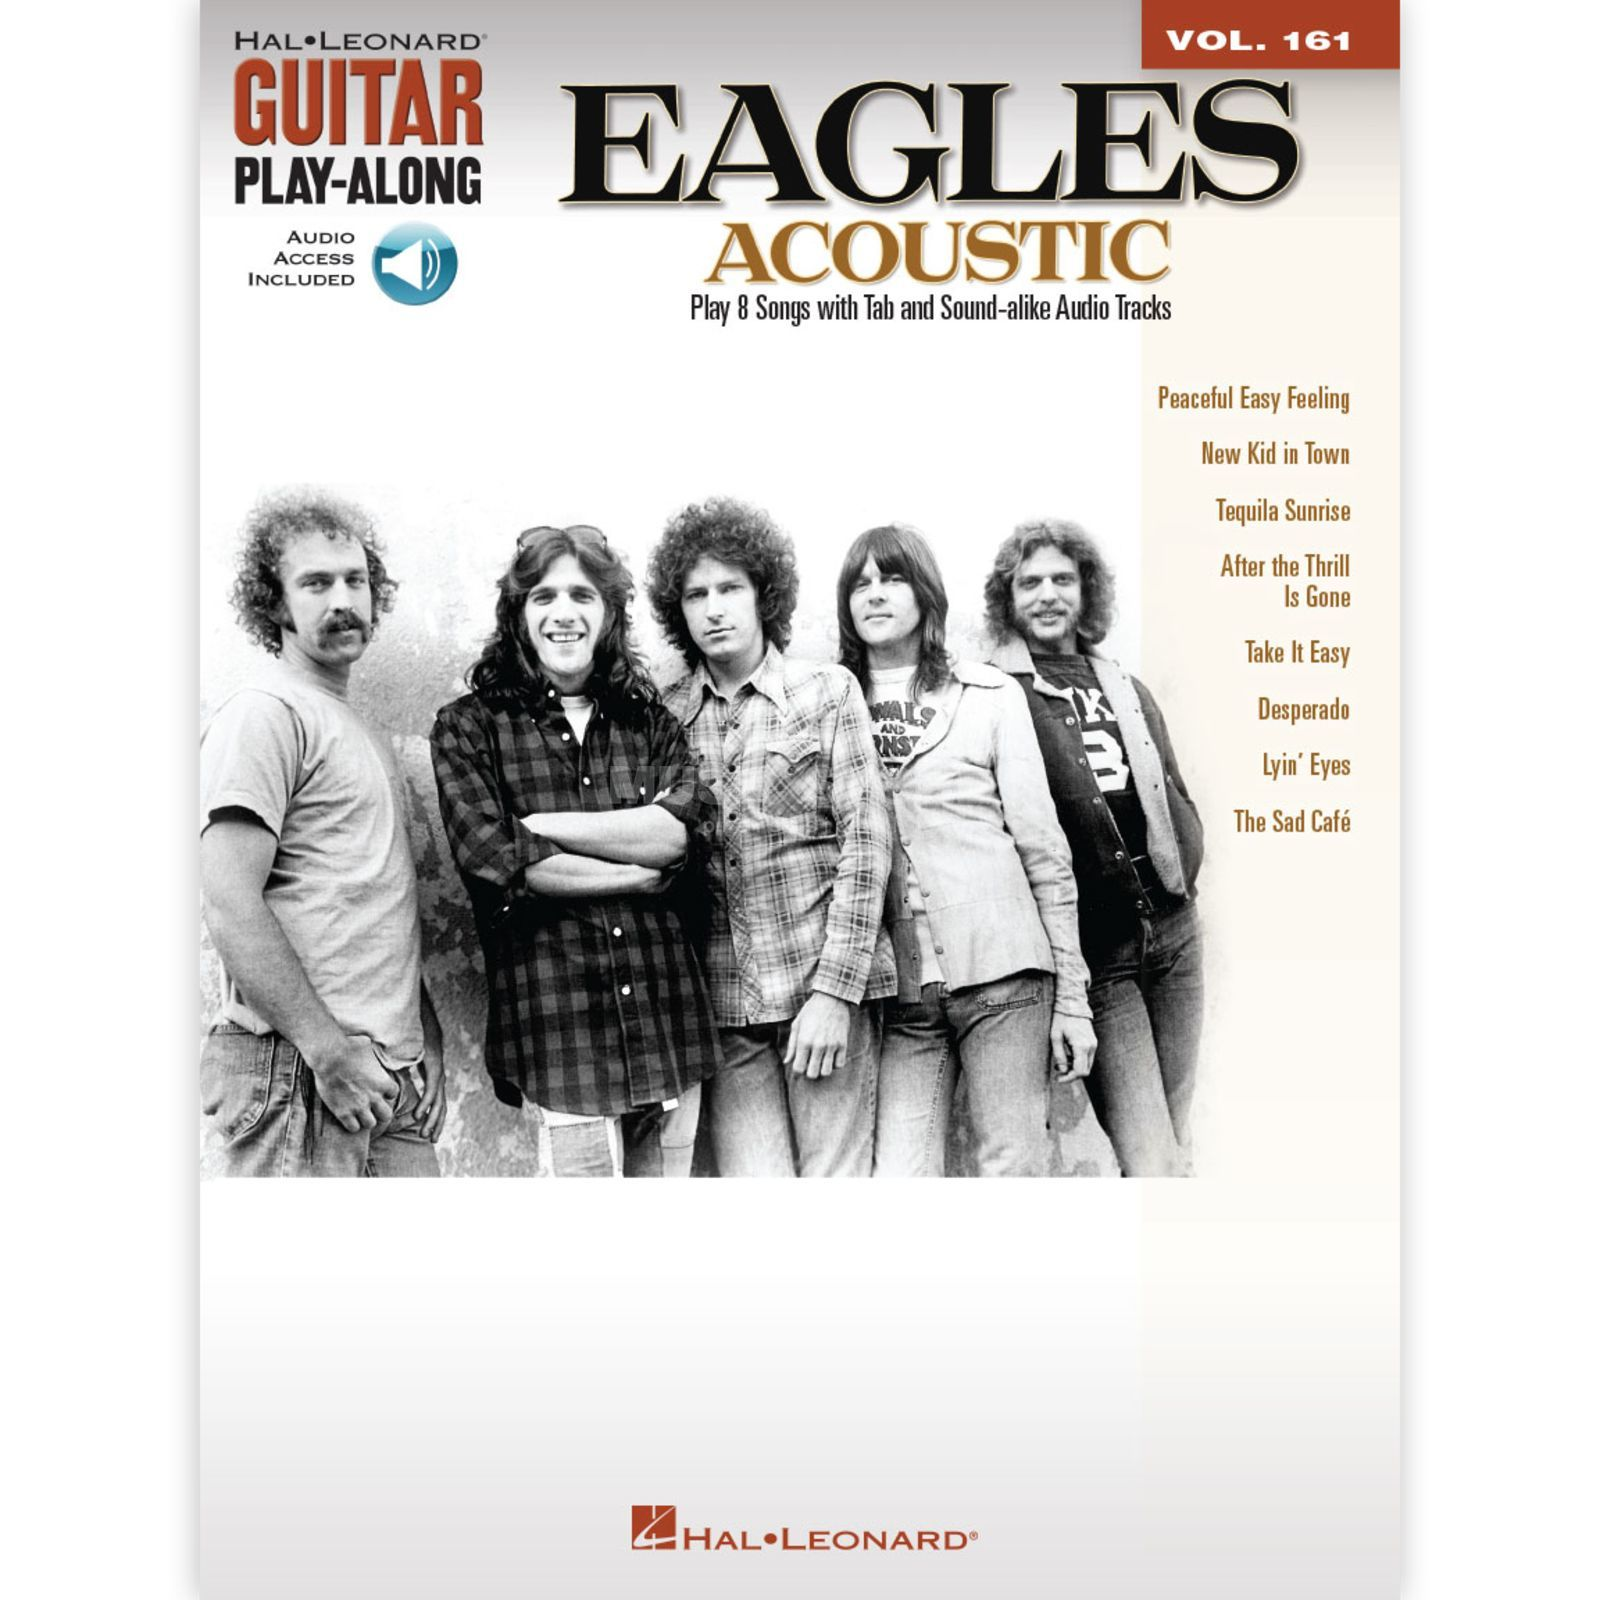 Hal Leonard Guitar Play-Along: The Eagles Acoustic Vol. 161, TAB und CD Produktbild